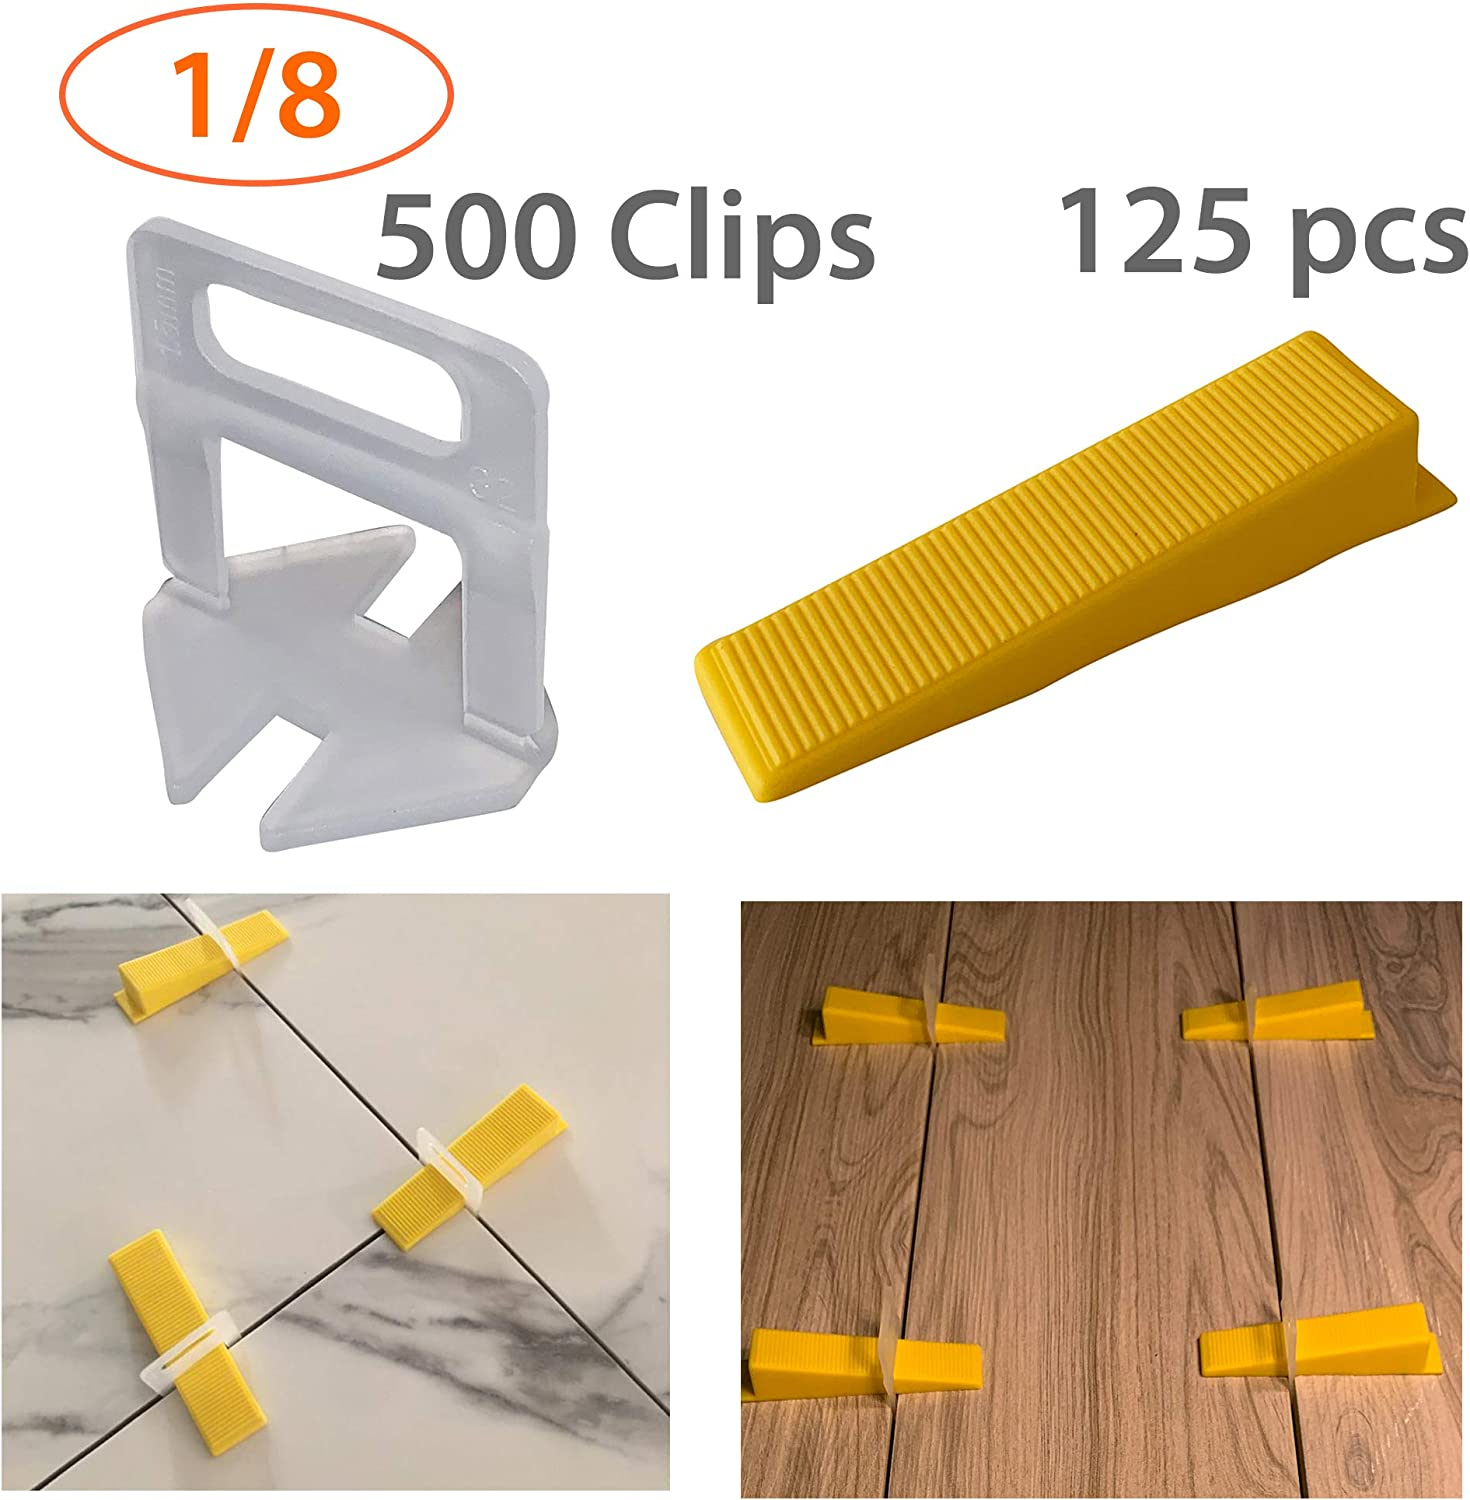 Lippage free tile and stone installation for PRO and DIY 1//8 Inch Tile Leveling Clips Tiles Leveler Spacers 500-Piece Leveling Spacer System